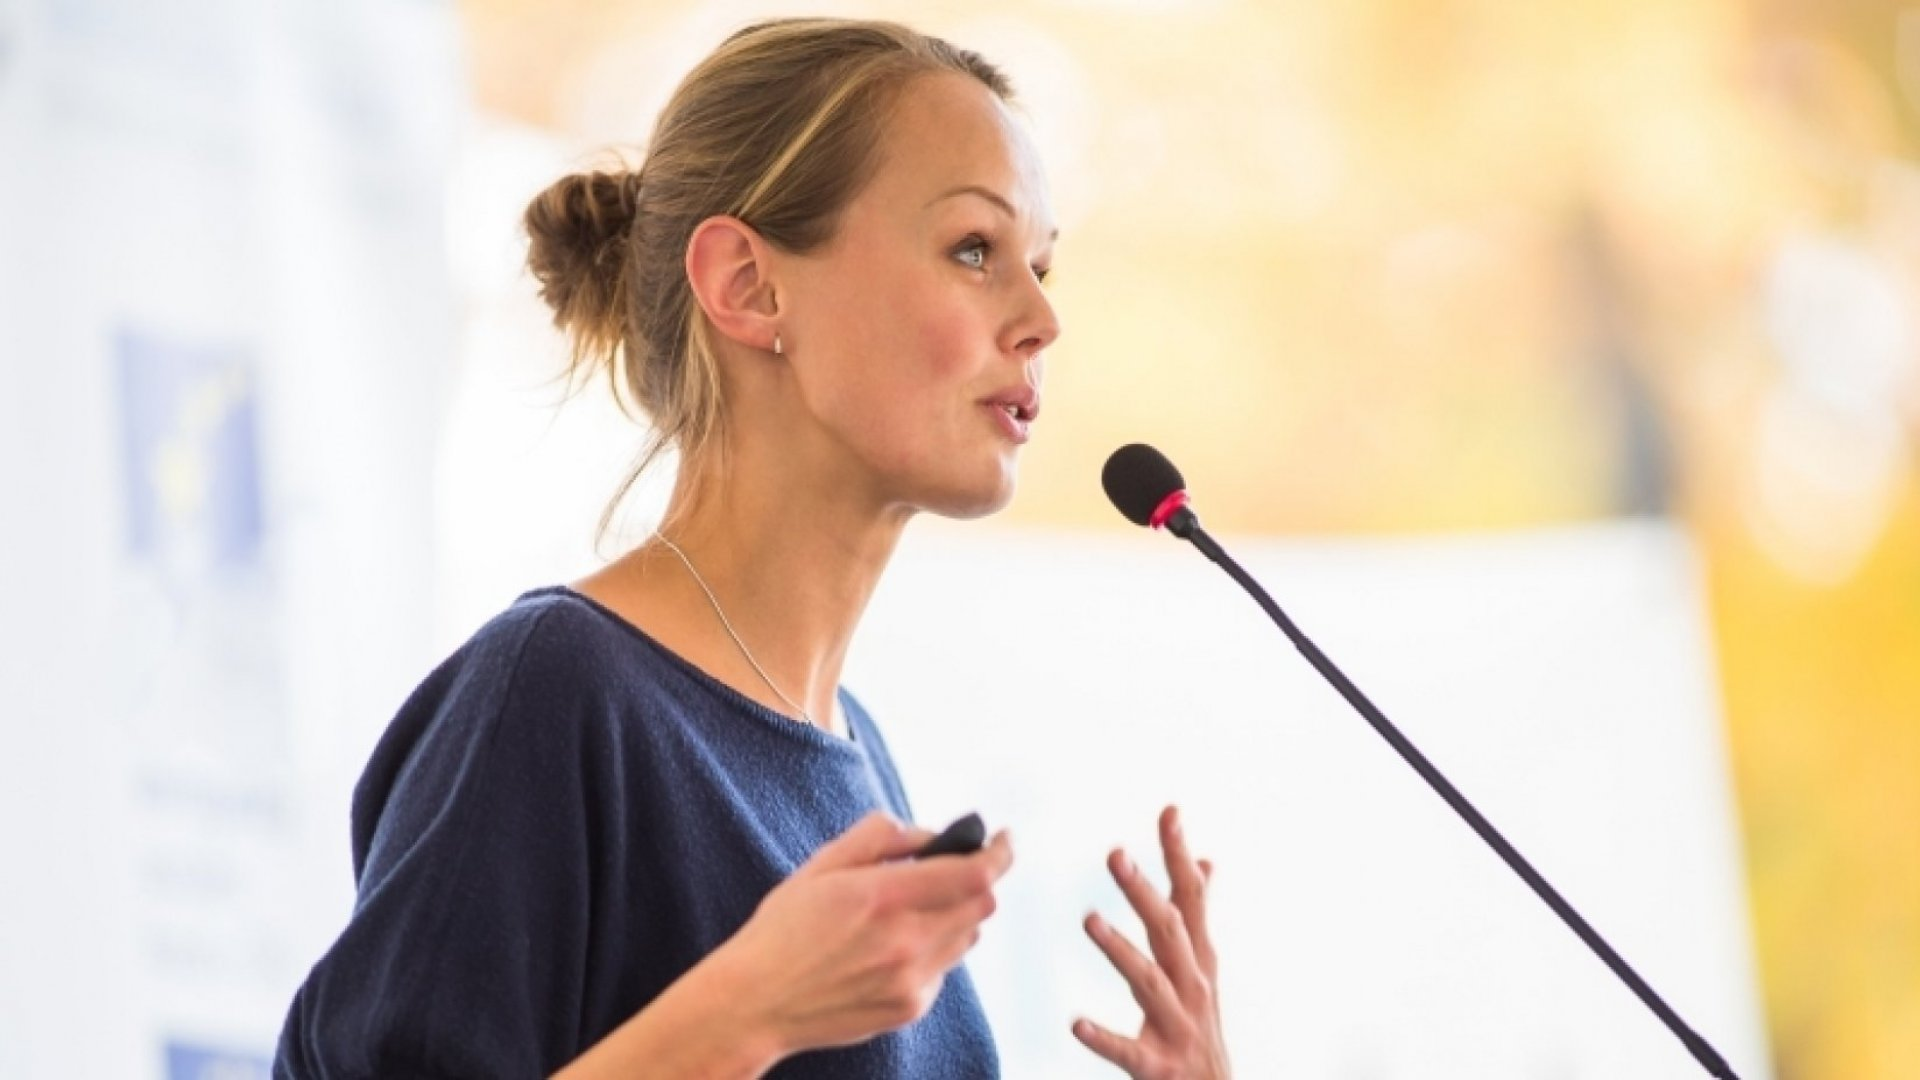 The Power of Your Voice: 3 Steps to Finding and Embracing It